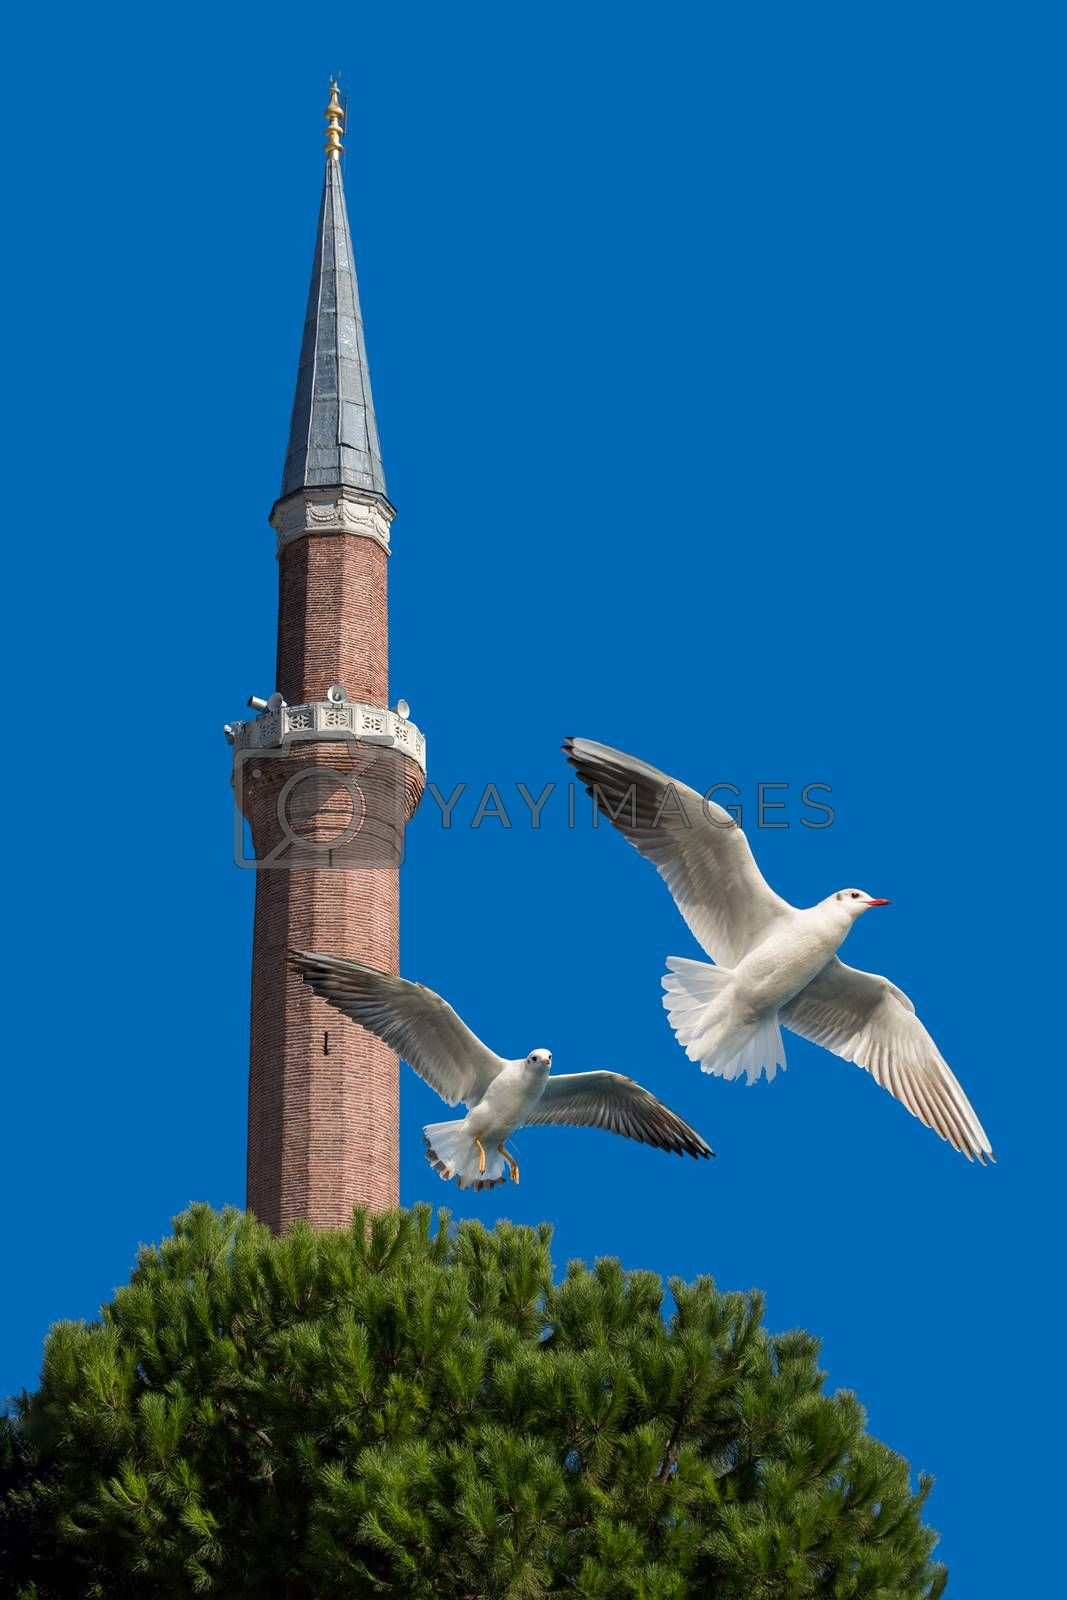 Minaret and pair of seagulls